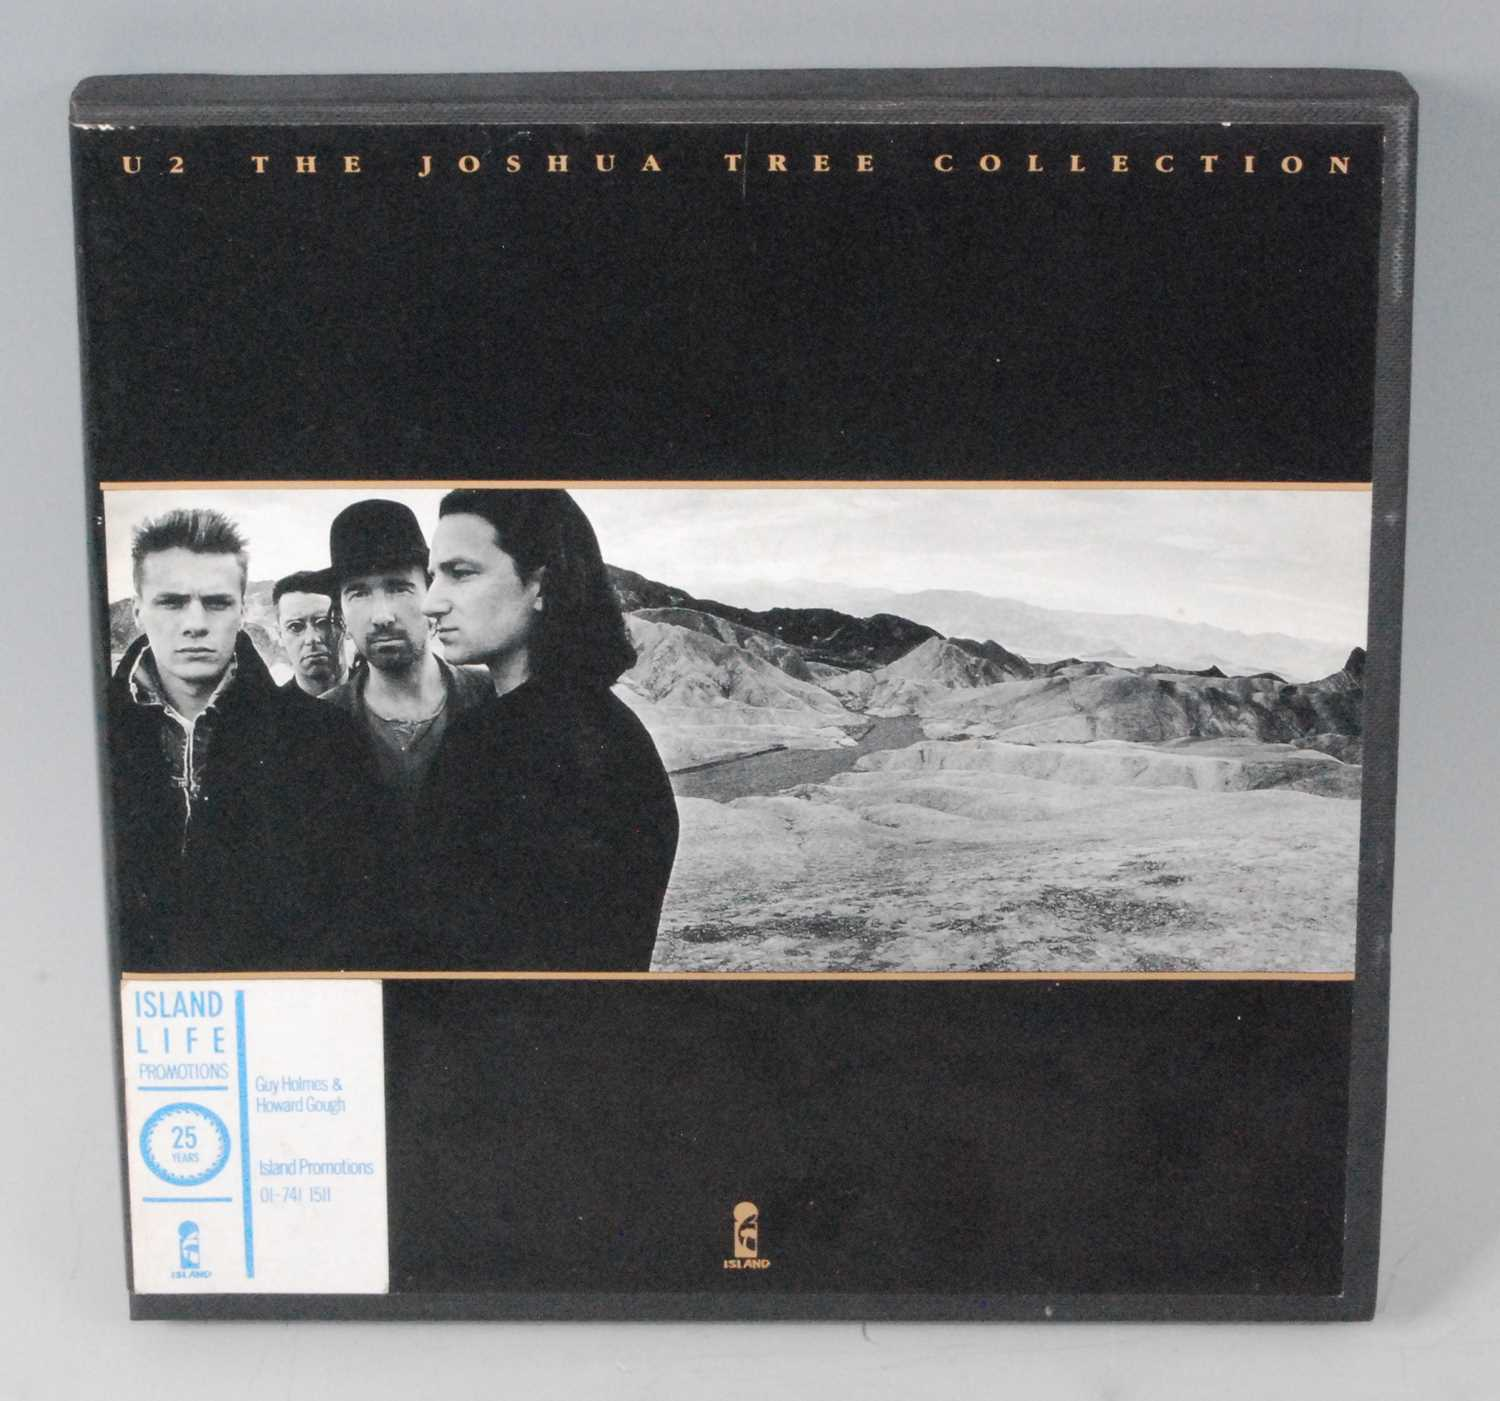 Lot 551 - U2, The Joshua Tree Collection, a set of five...